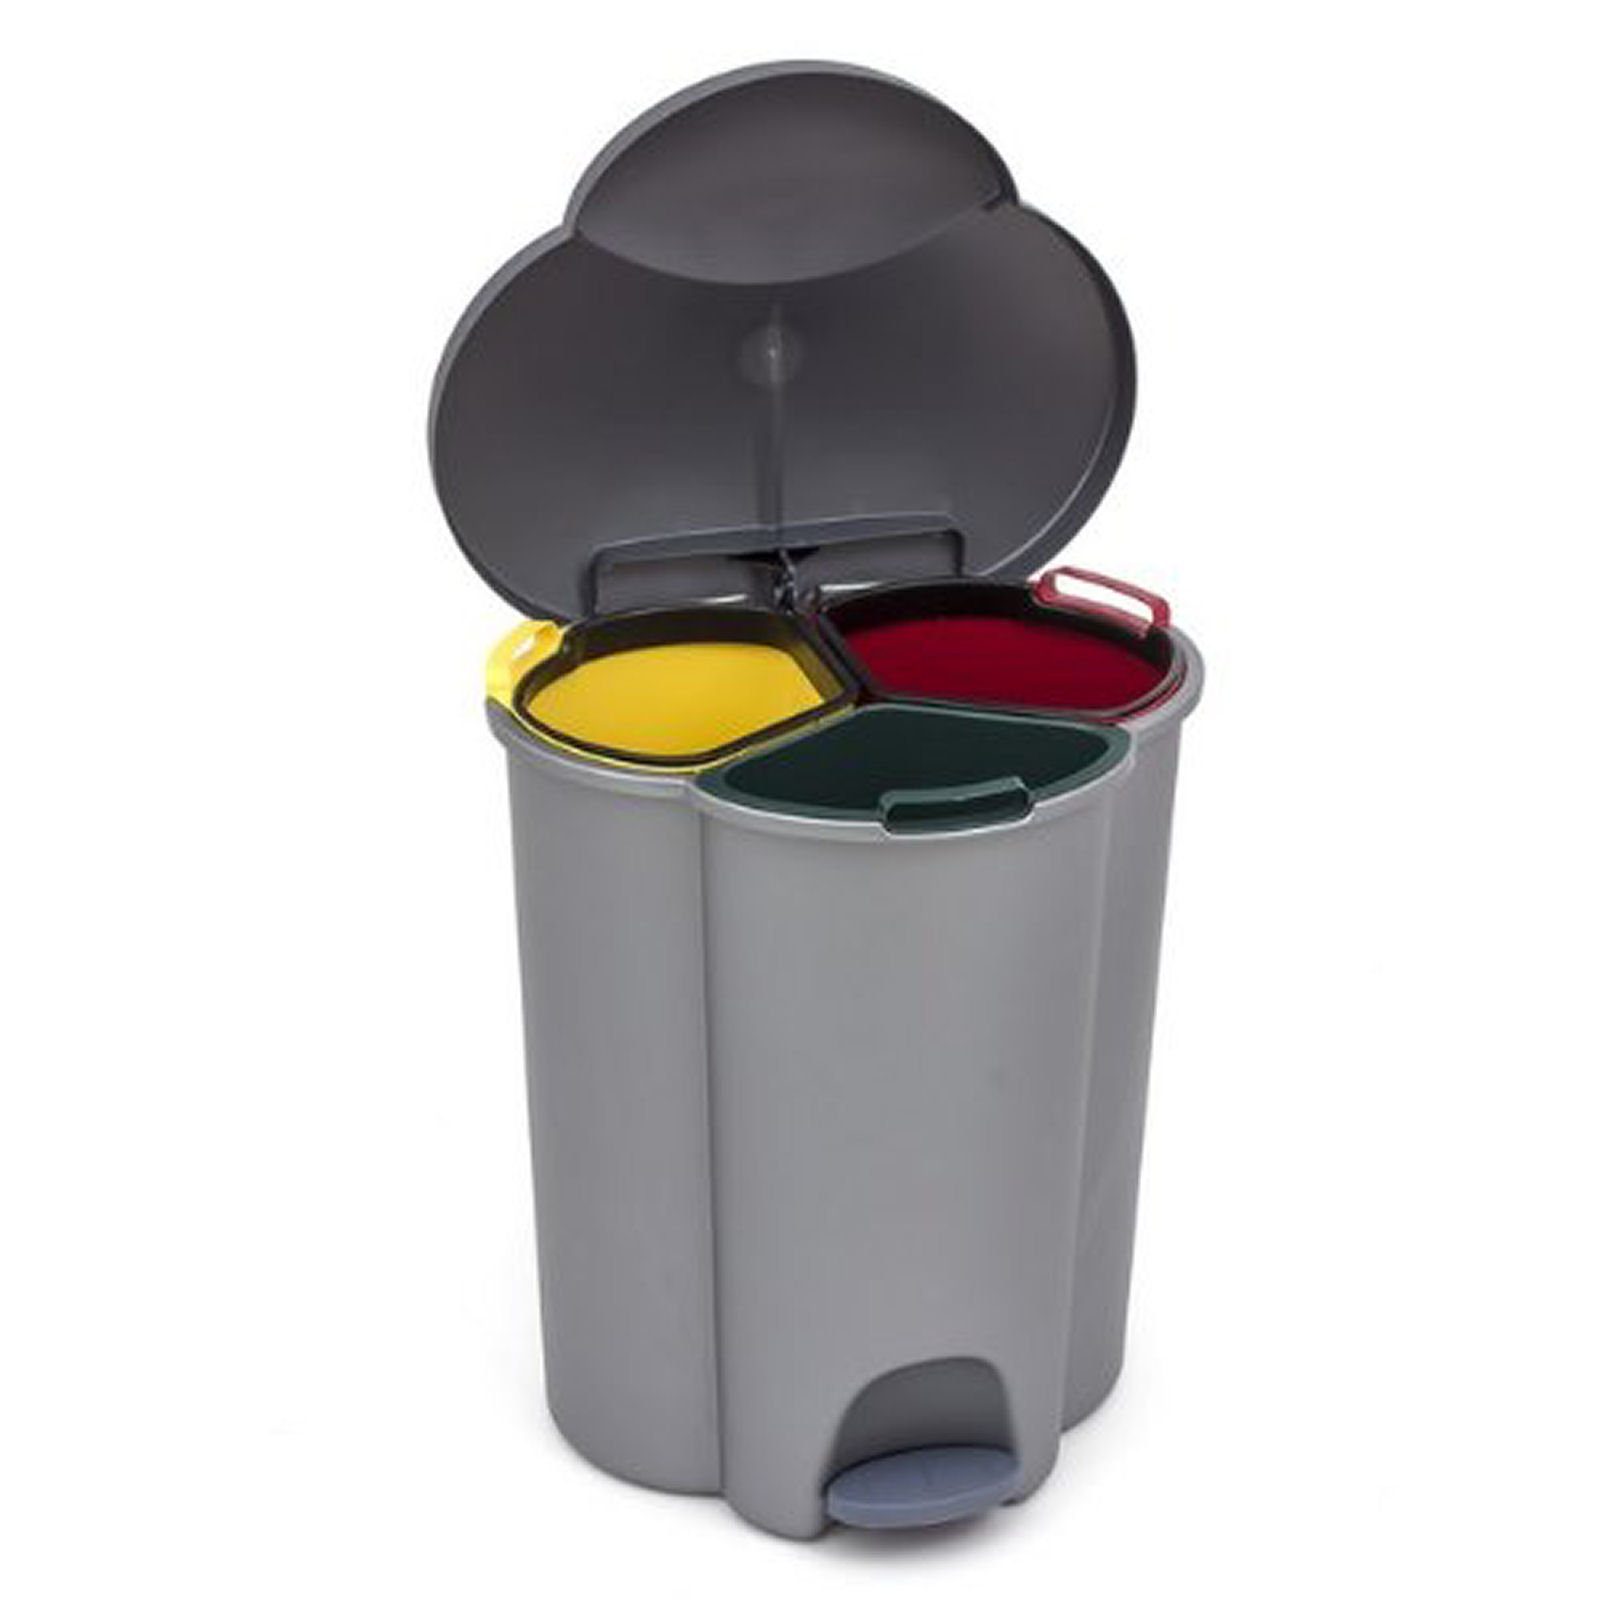 Kitchen trash can with 3 inner container for waste segregation